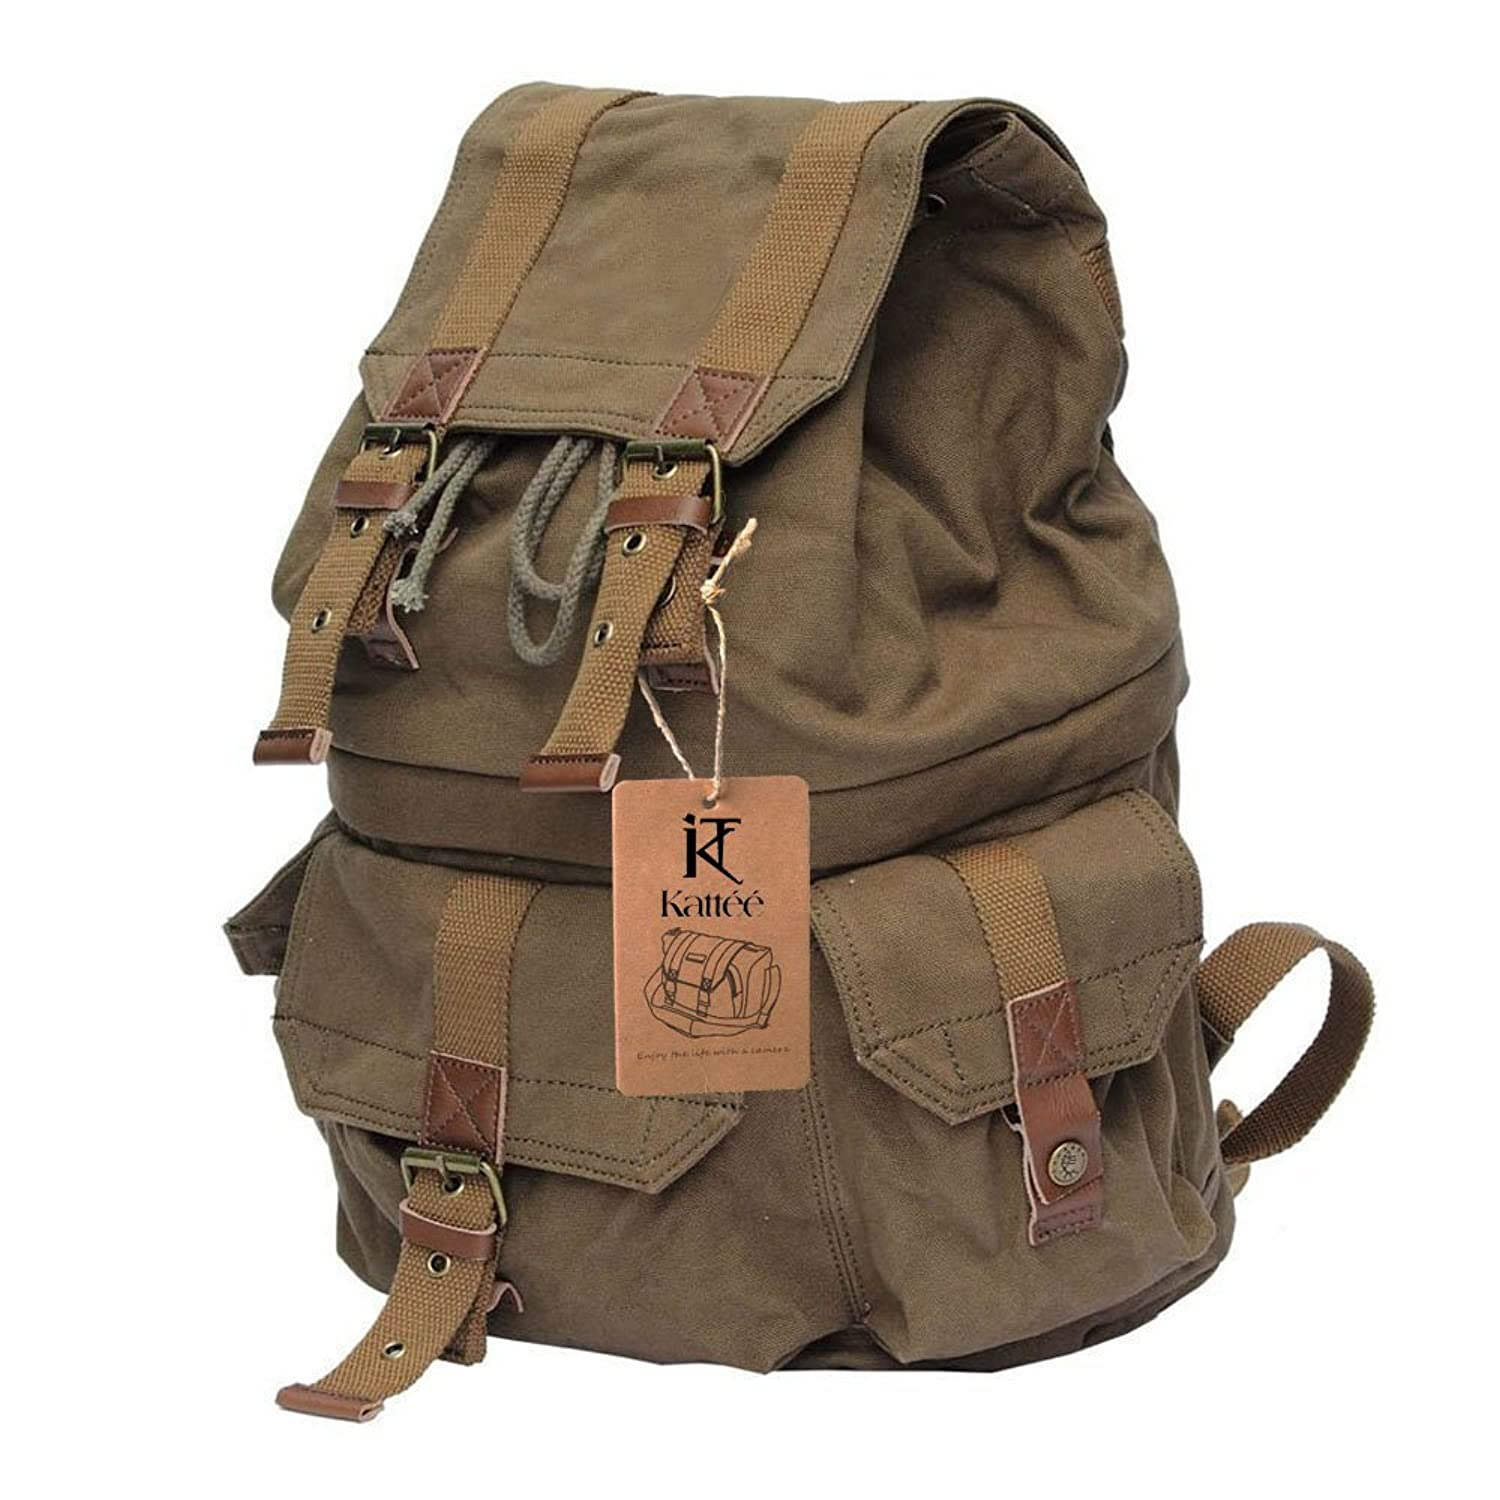 Amazon.com: Kattee Military Style Canvas DSLR Camera Backpack ...